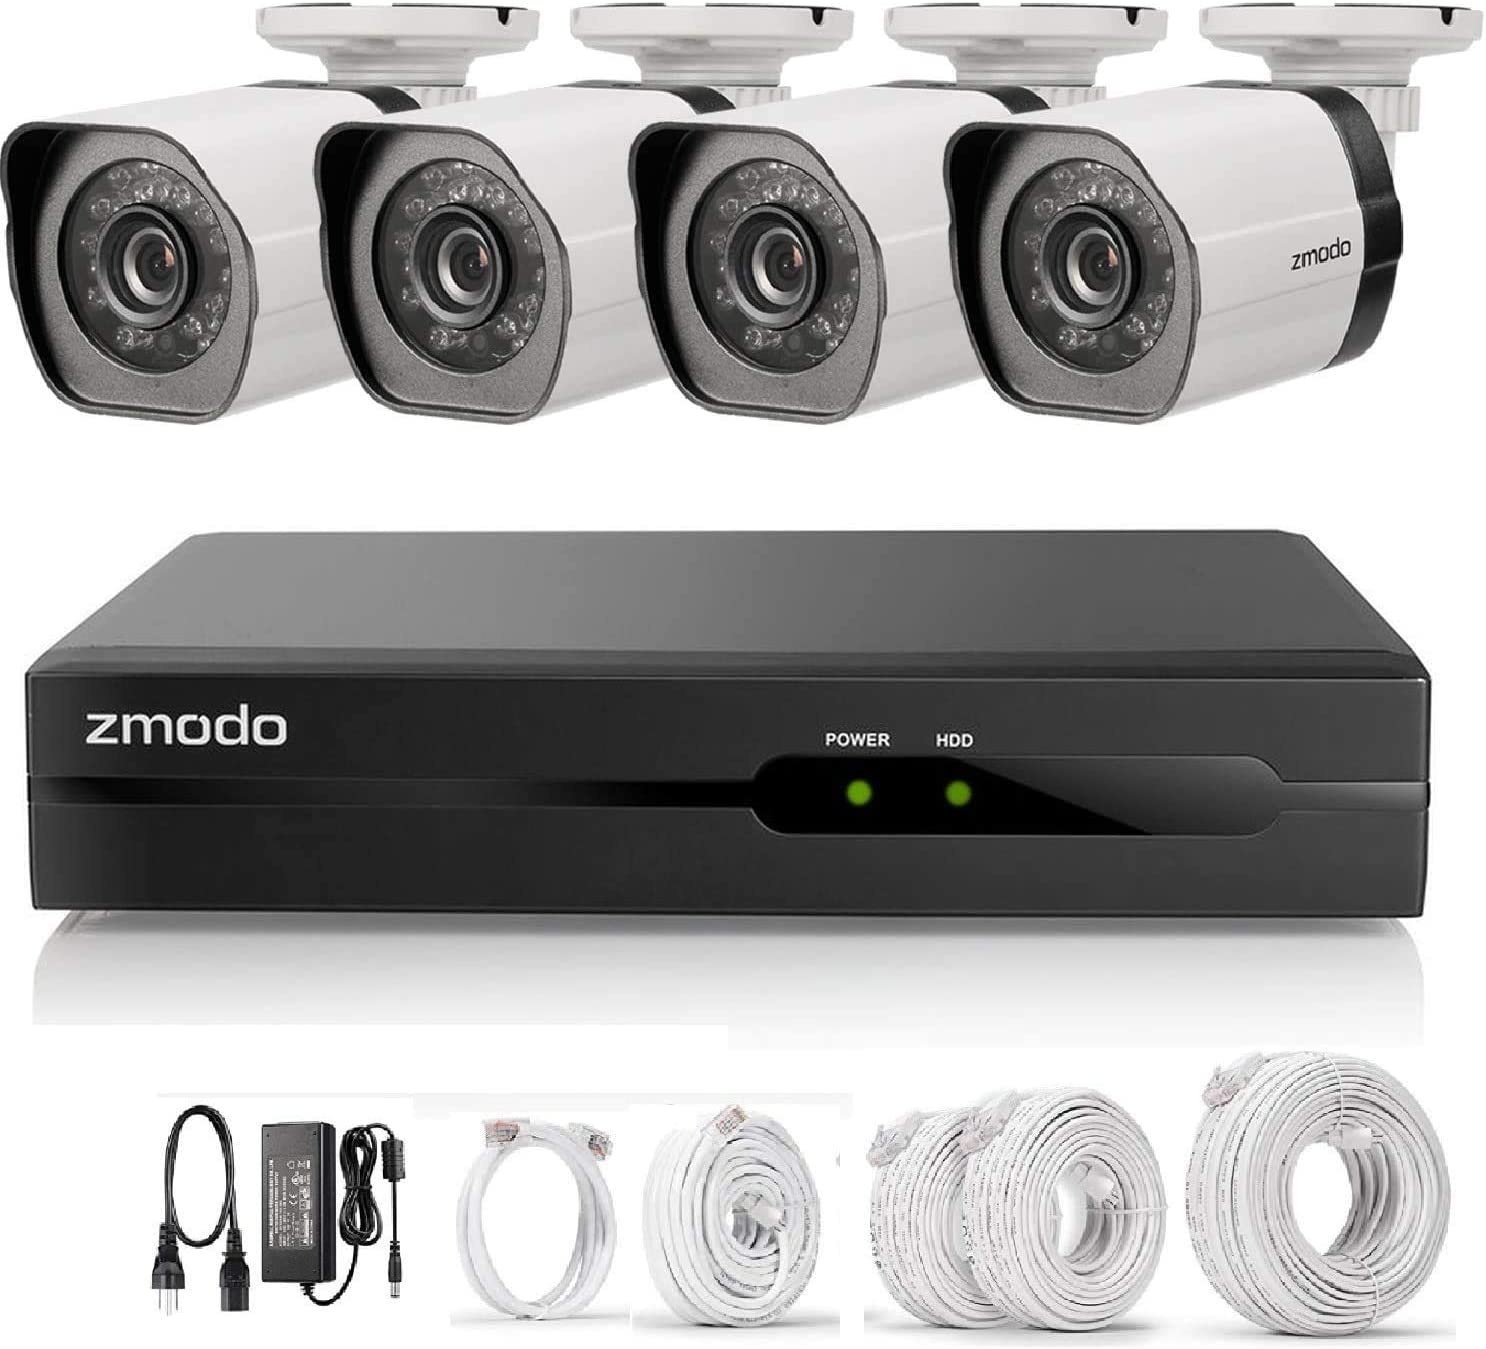 Zmodo 4 Channel 720p Simplified PoE Surveillance Camera System Intelligent Video Cloud Recorder 4 Outdoor and Indoor IP Cameras with Motion Detection, Night Vision